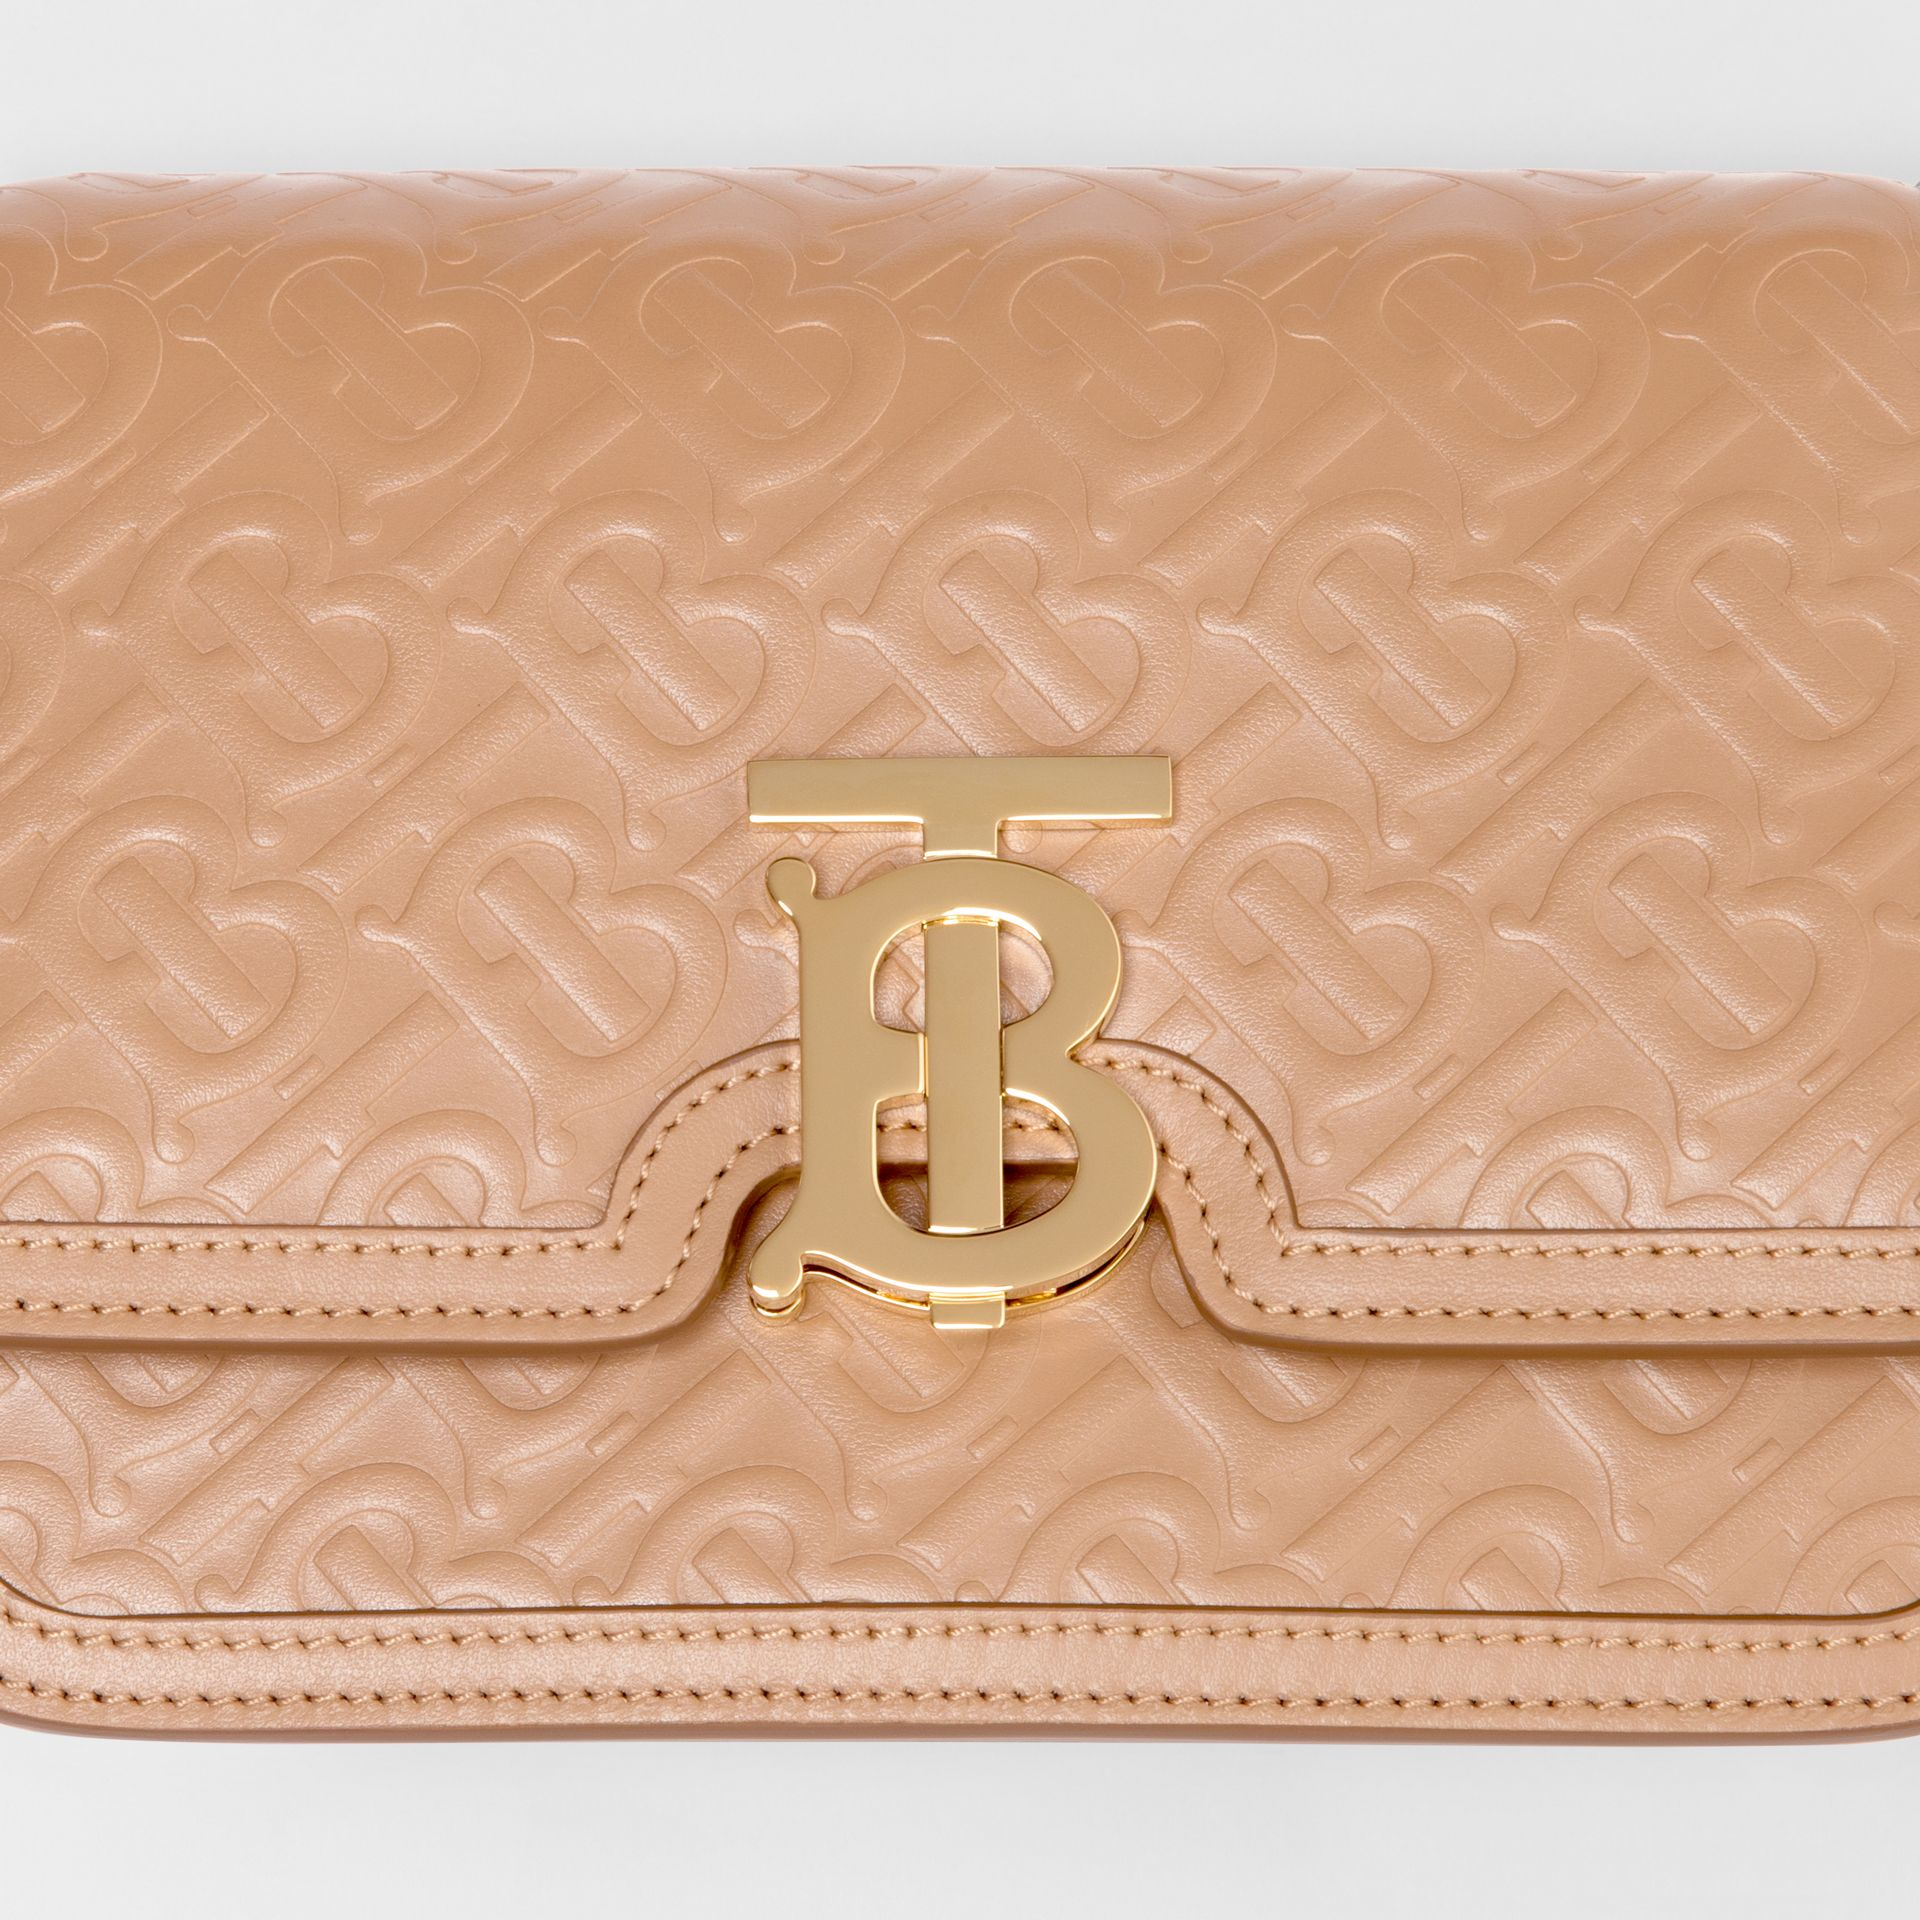 Small Monogram Leather TB Bag in Light Camel - Women | Burberry United Kingdom - gallery image 1